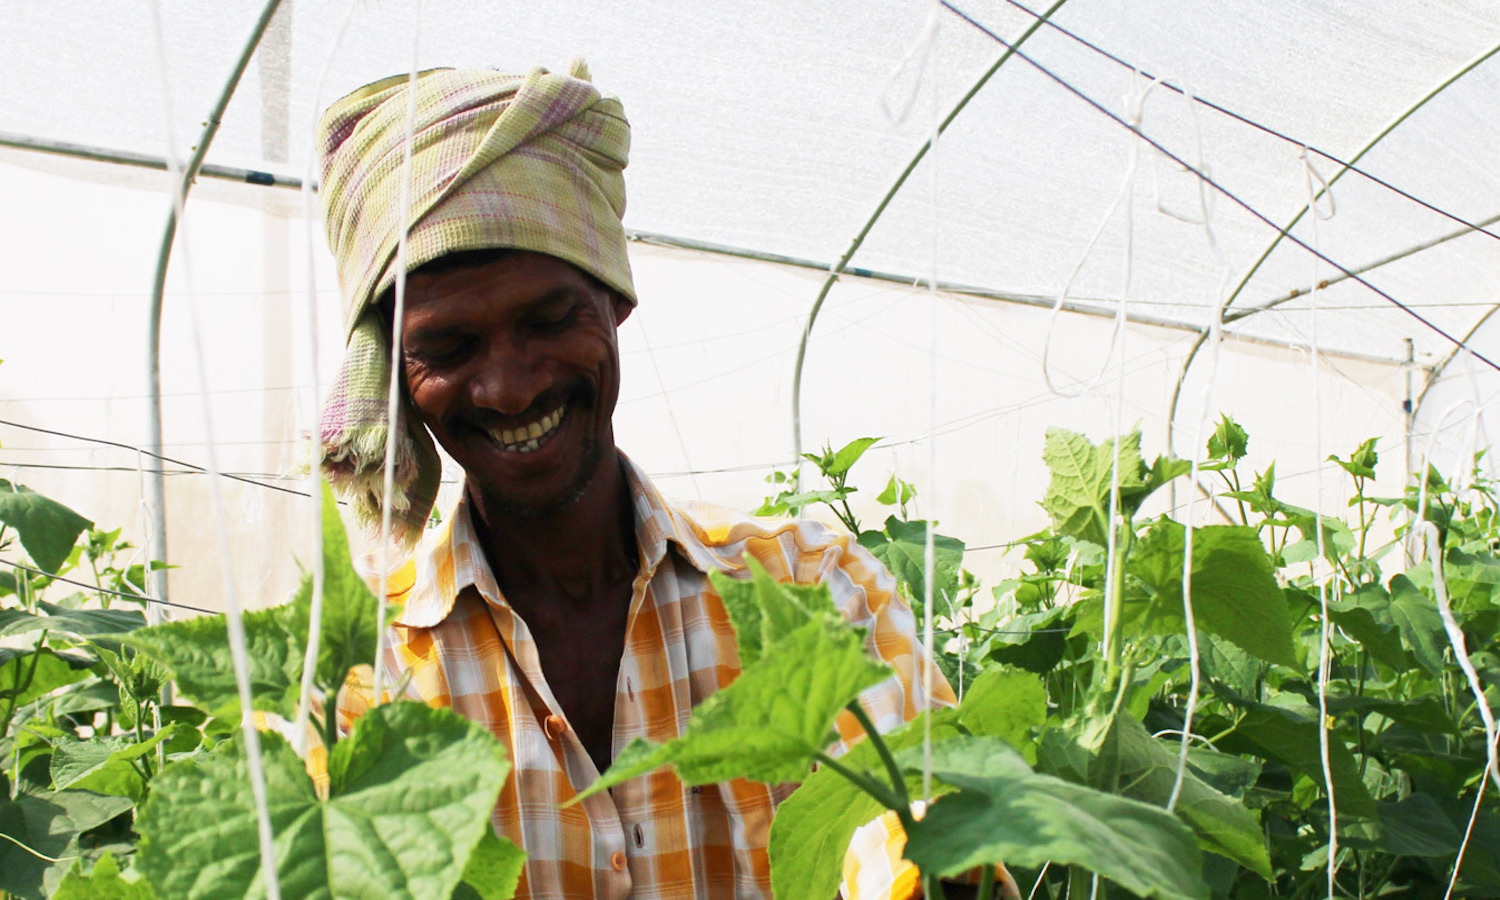 Nonprofit Kheyti is making greenhouse agriculture accessible to smallholder farmers in India